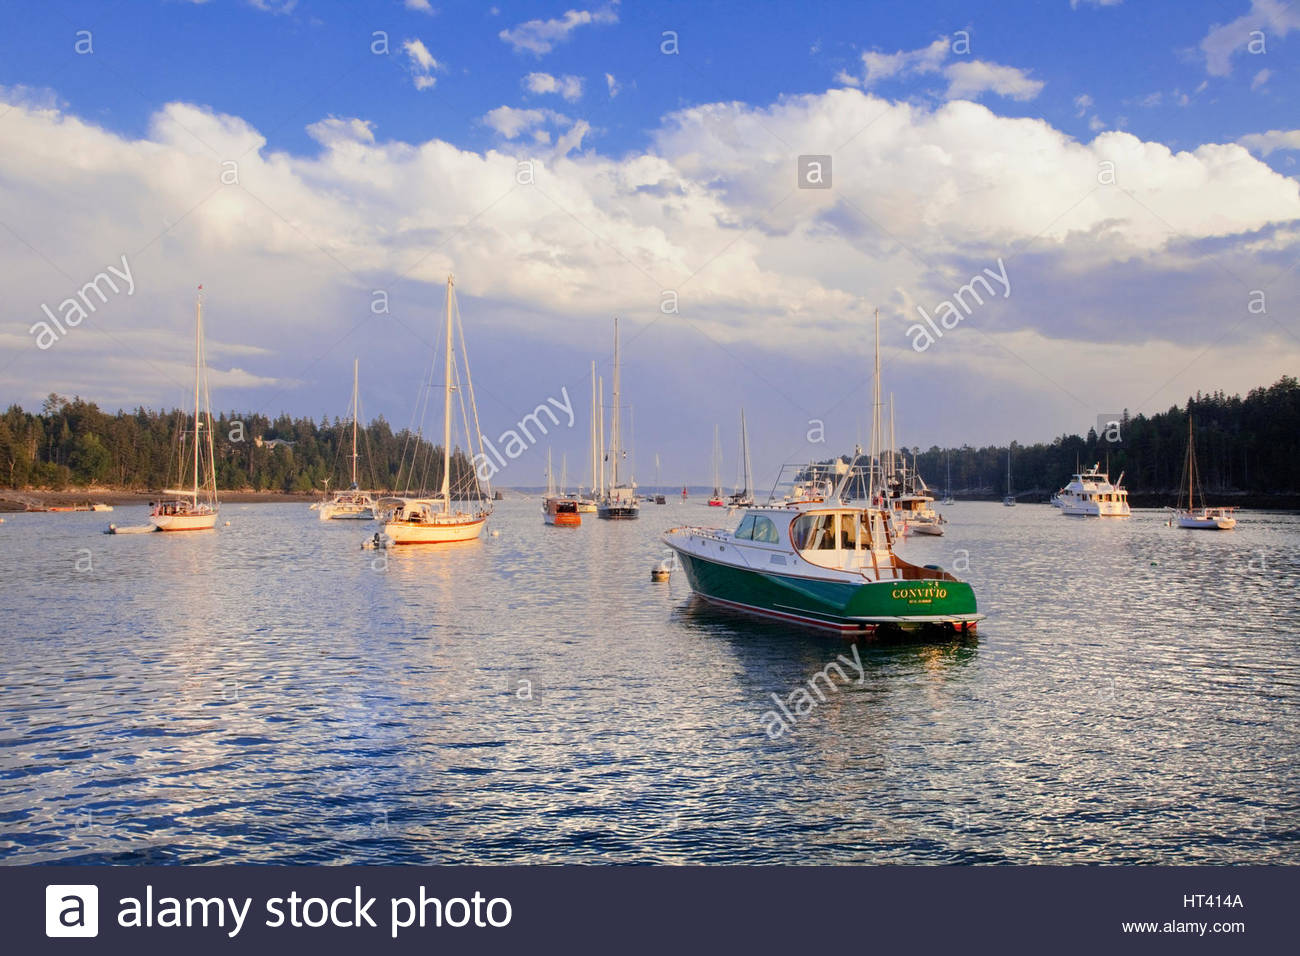 0902-1010   Moored boats in Northeast Harbor, Maine. - Stock Image